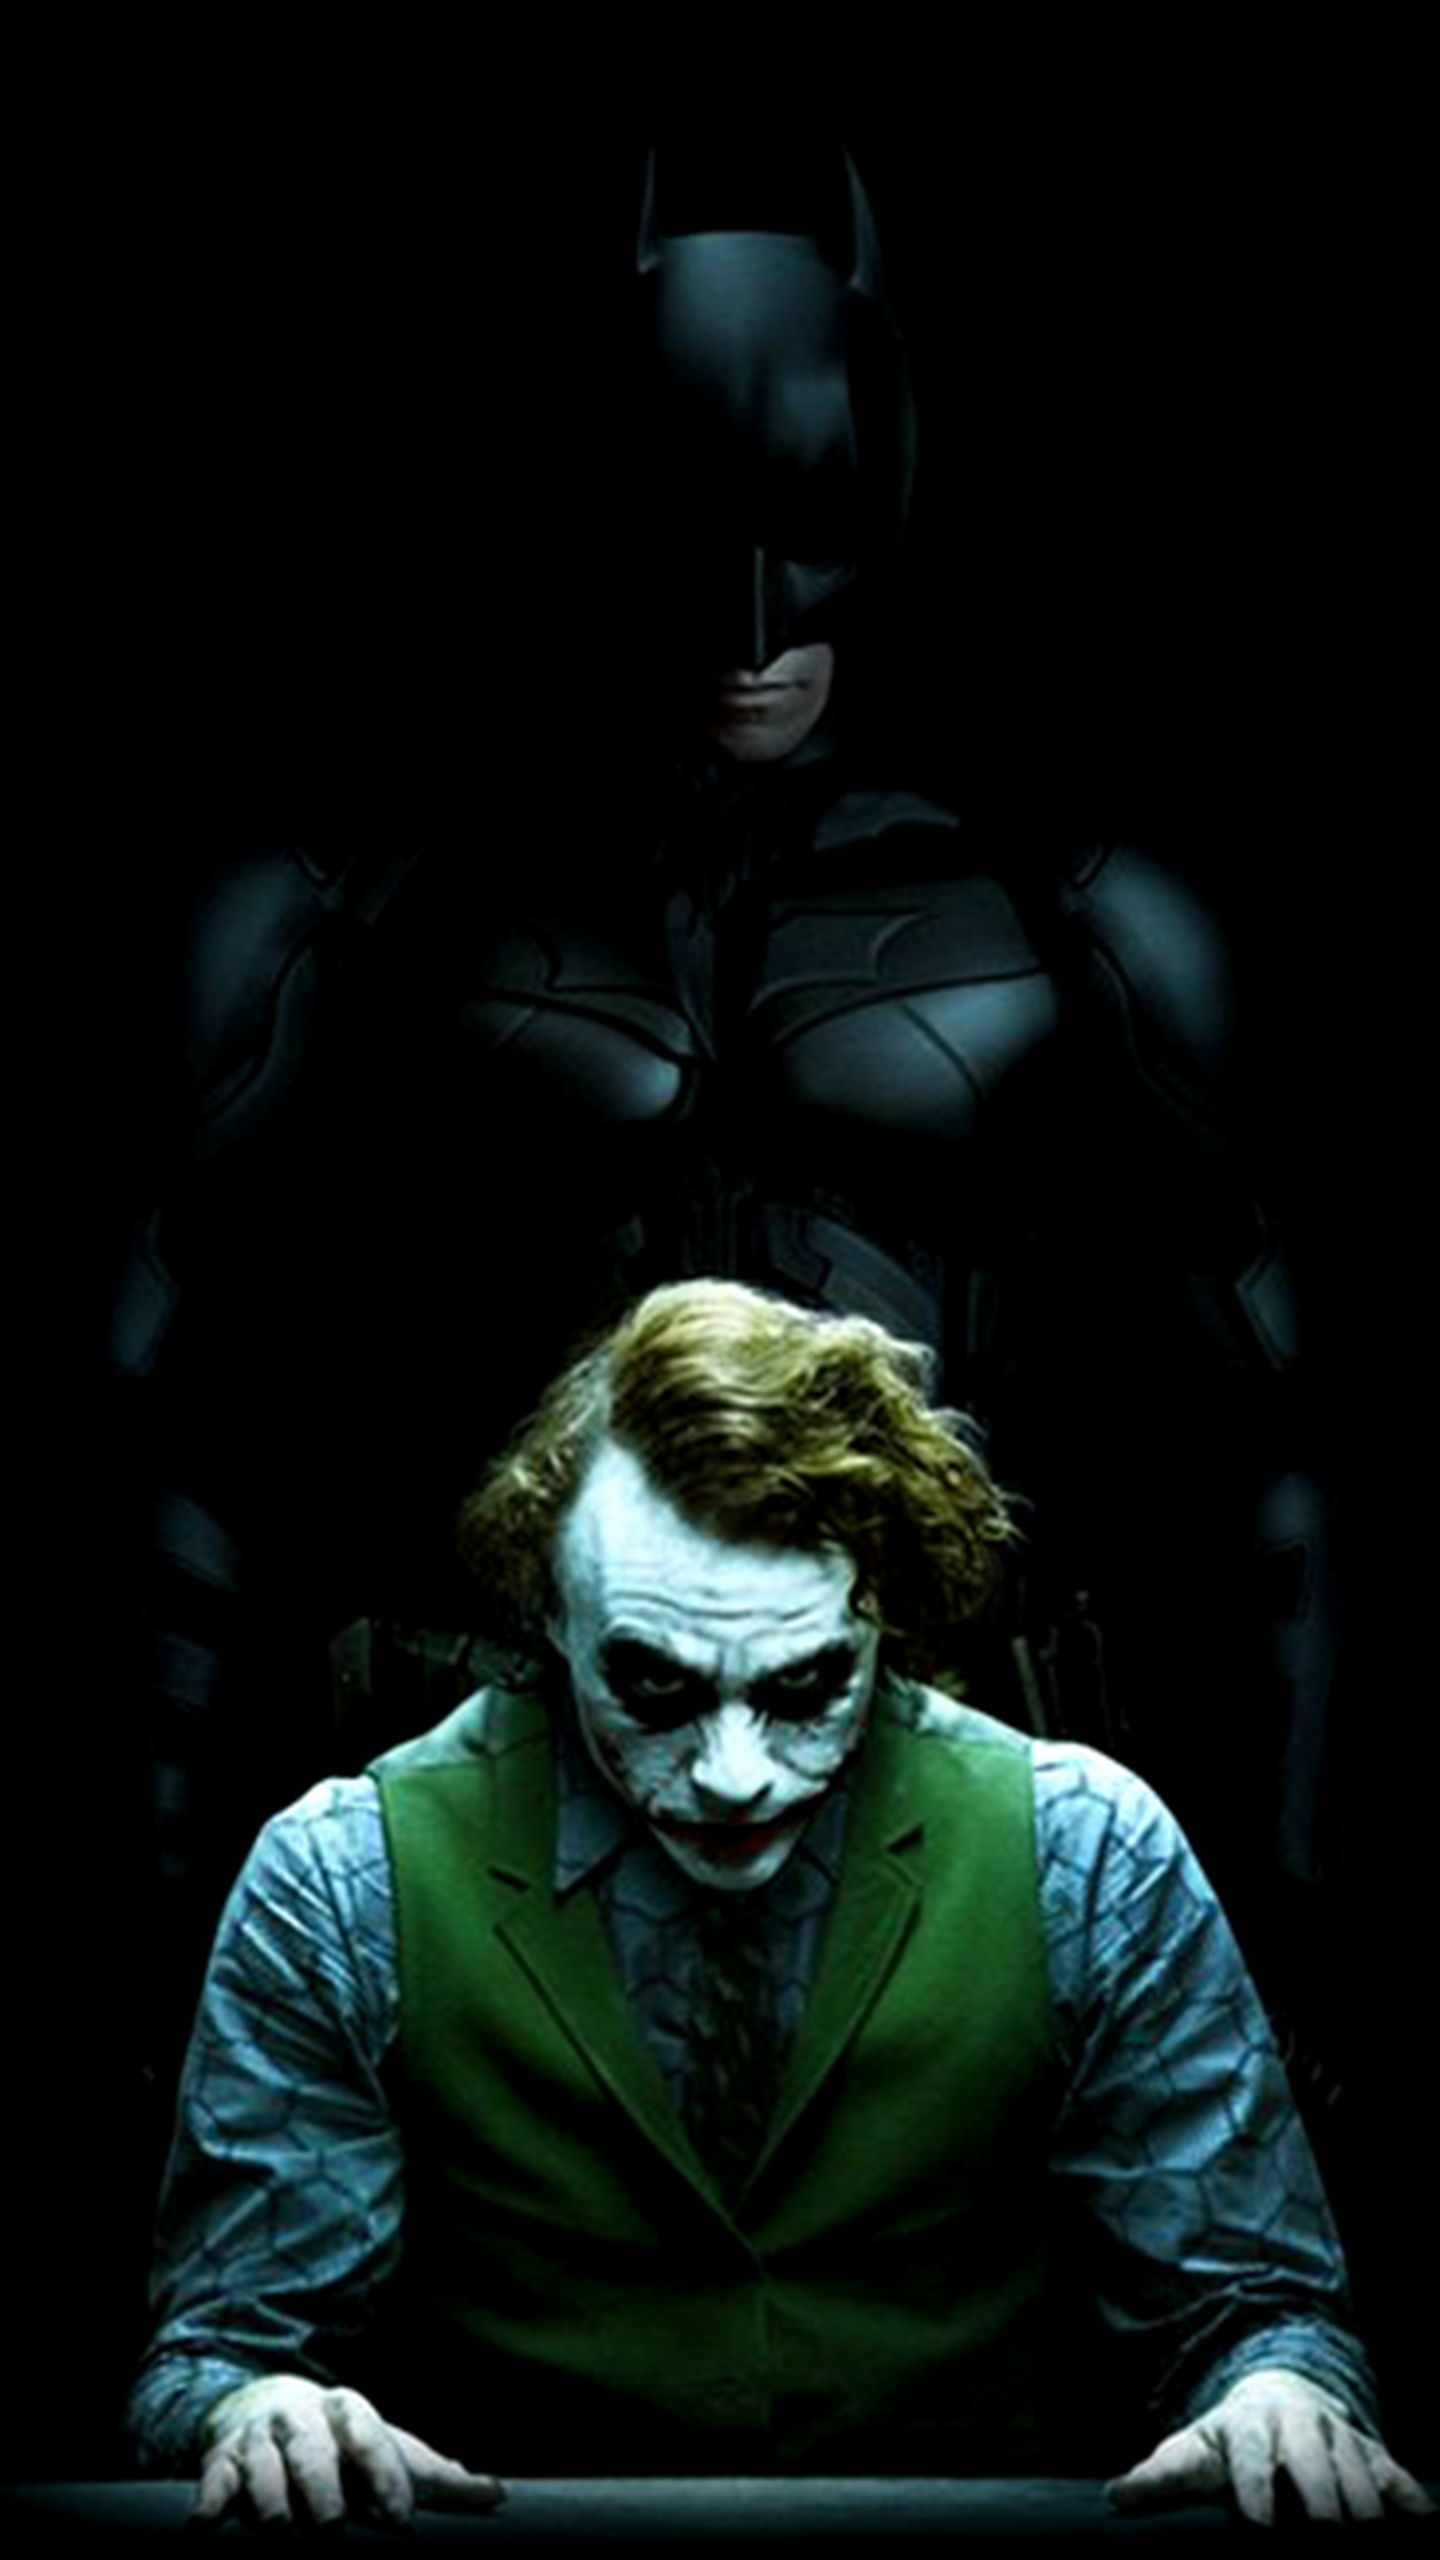 Batman Joker Amoled Lockscreen Homescreen Wallpapers Batman